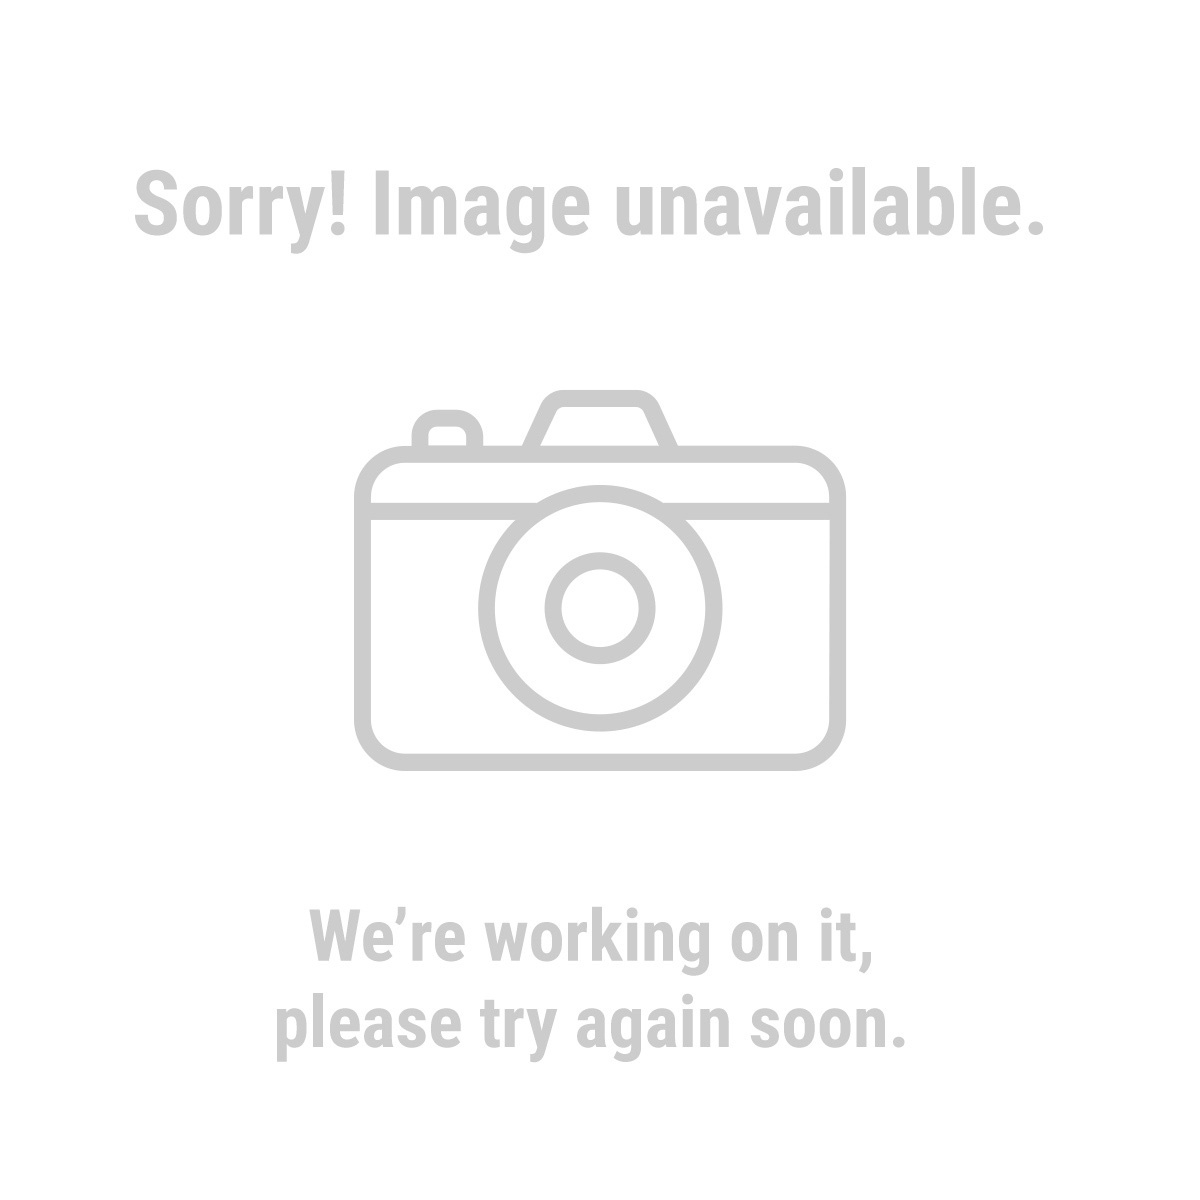 HFT 69795 12 Piece Microfiber Cleaning Cloths